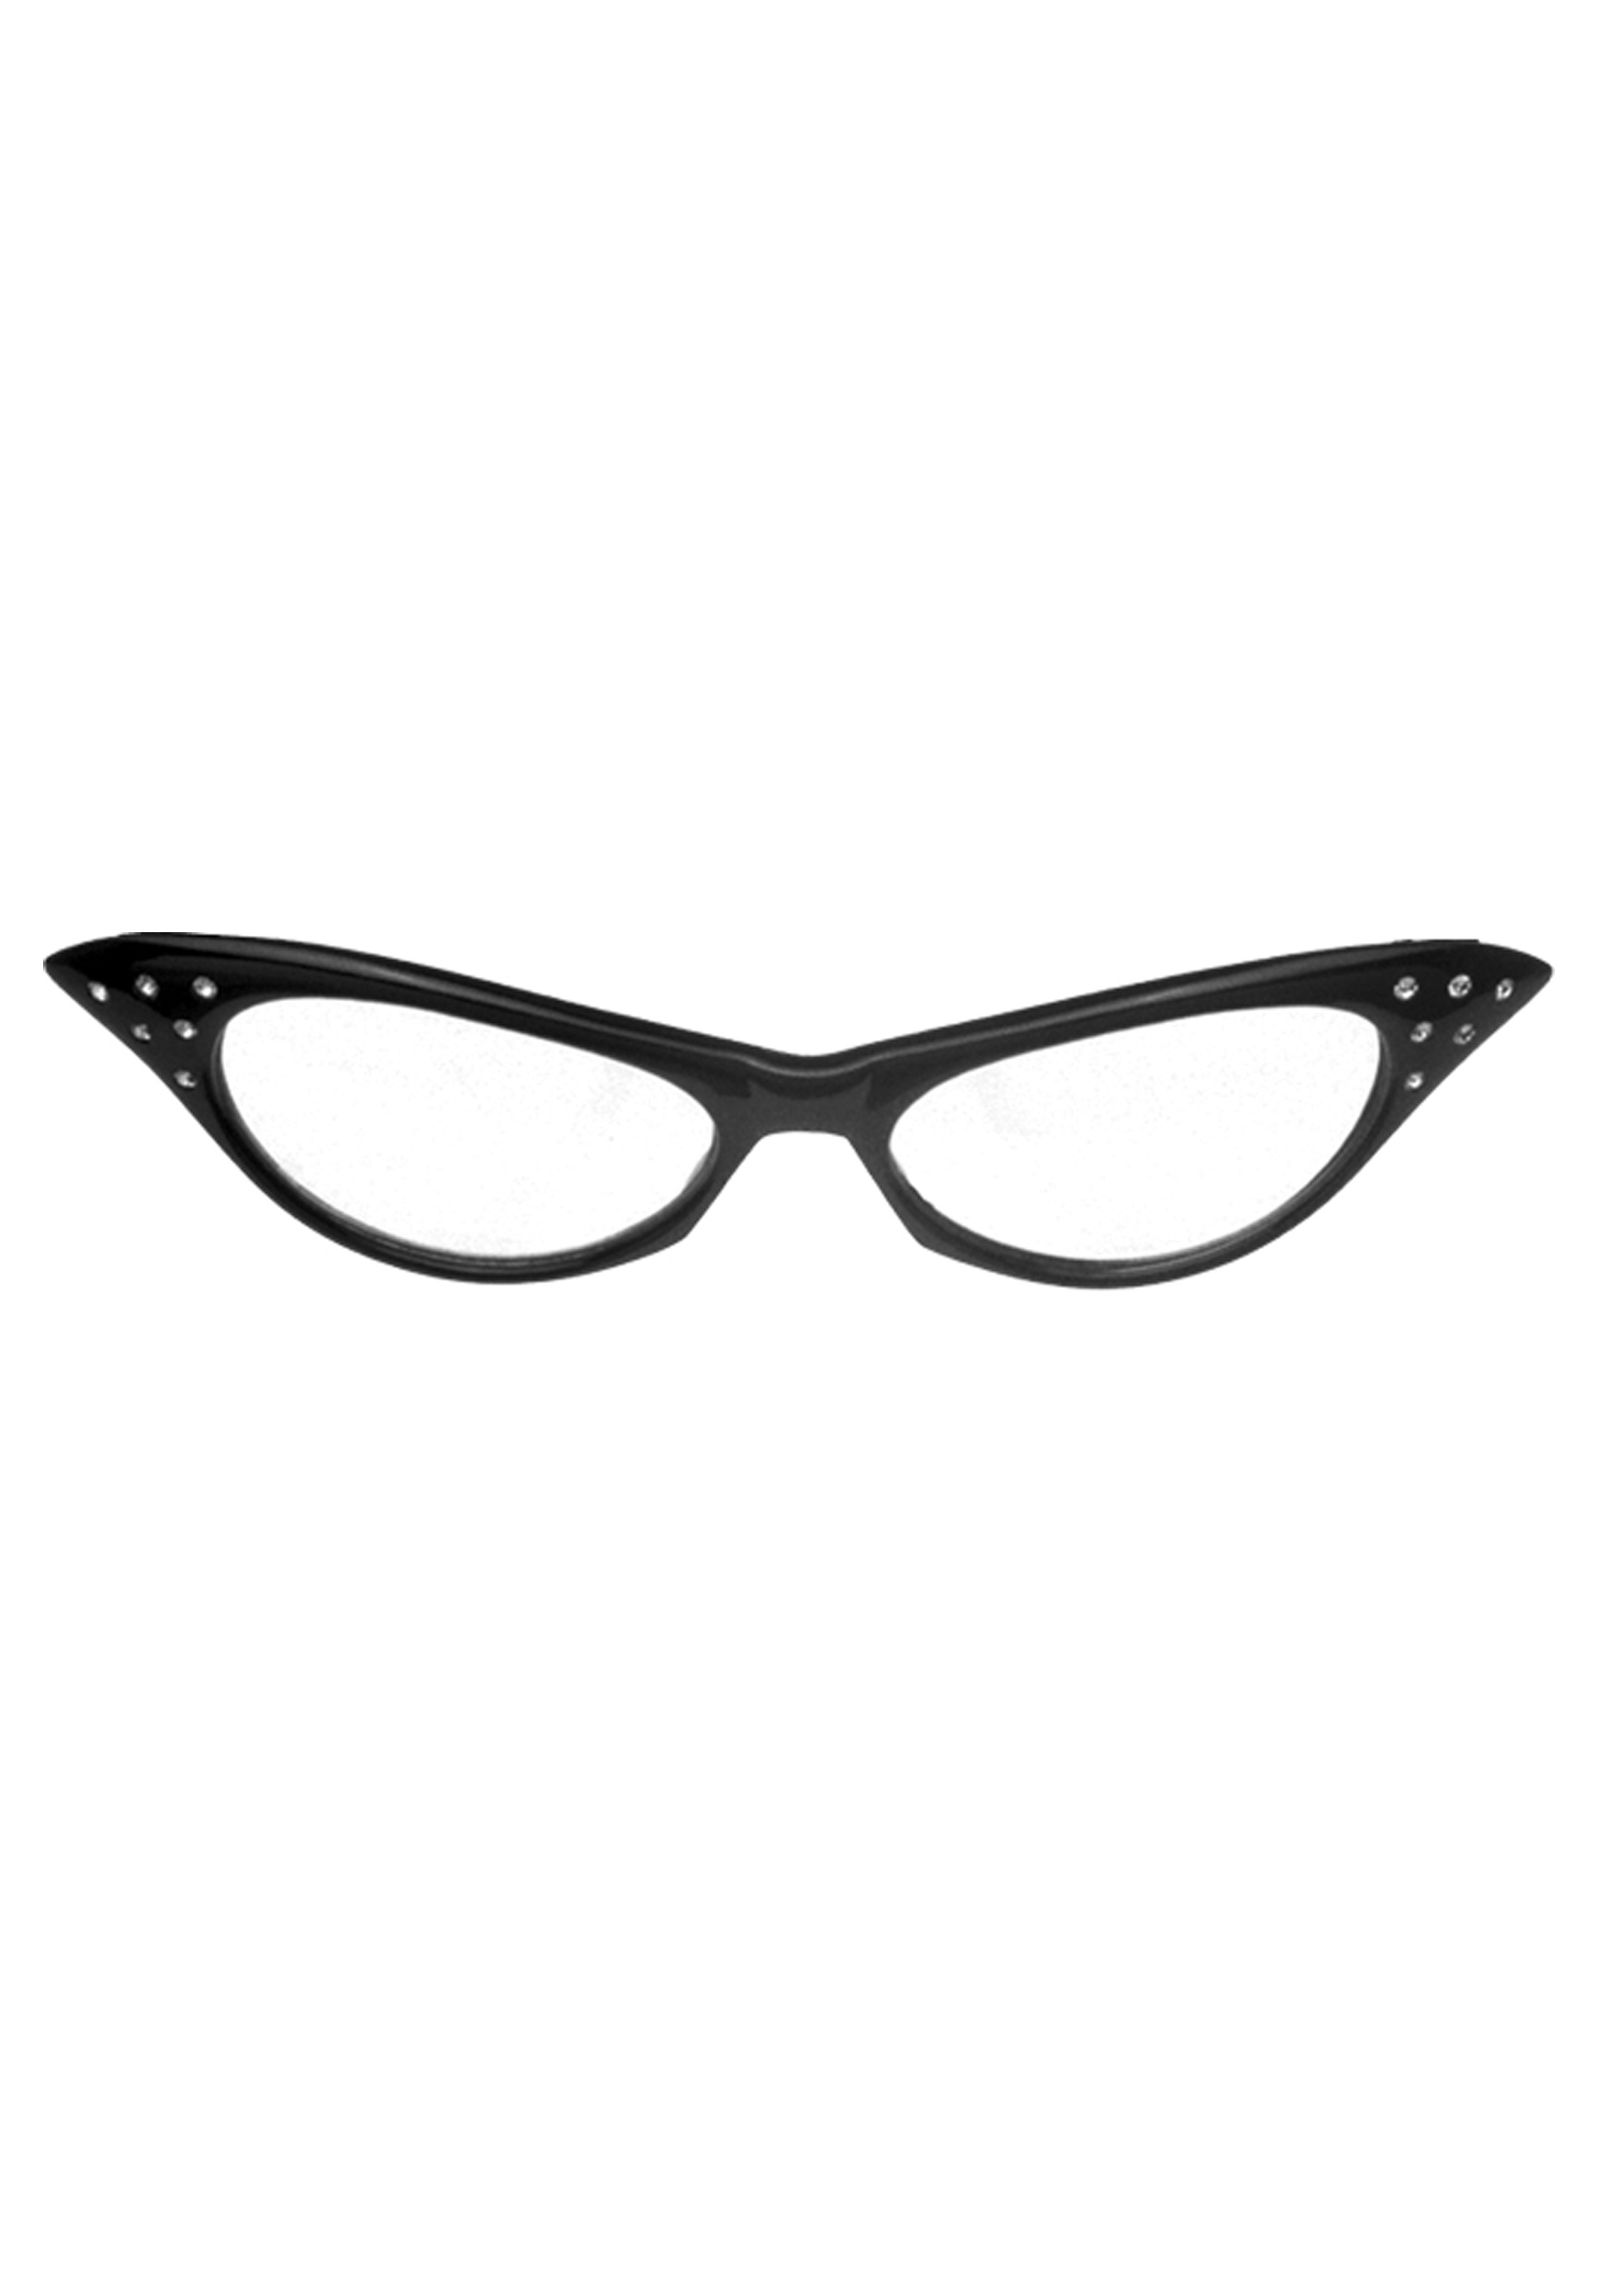 Black Frame Glasses Images : S Black Frame Glasses Zoom Free Images at Clker.com ...